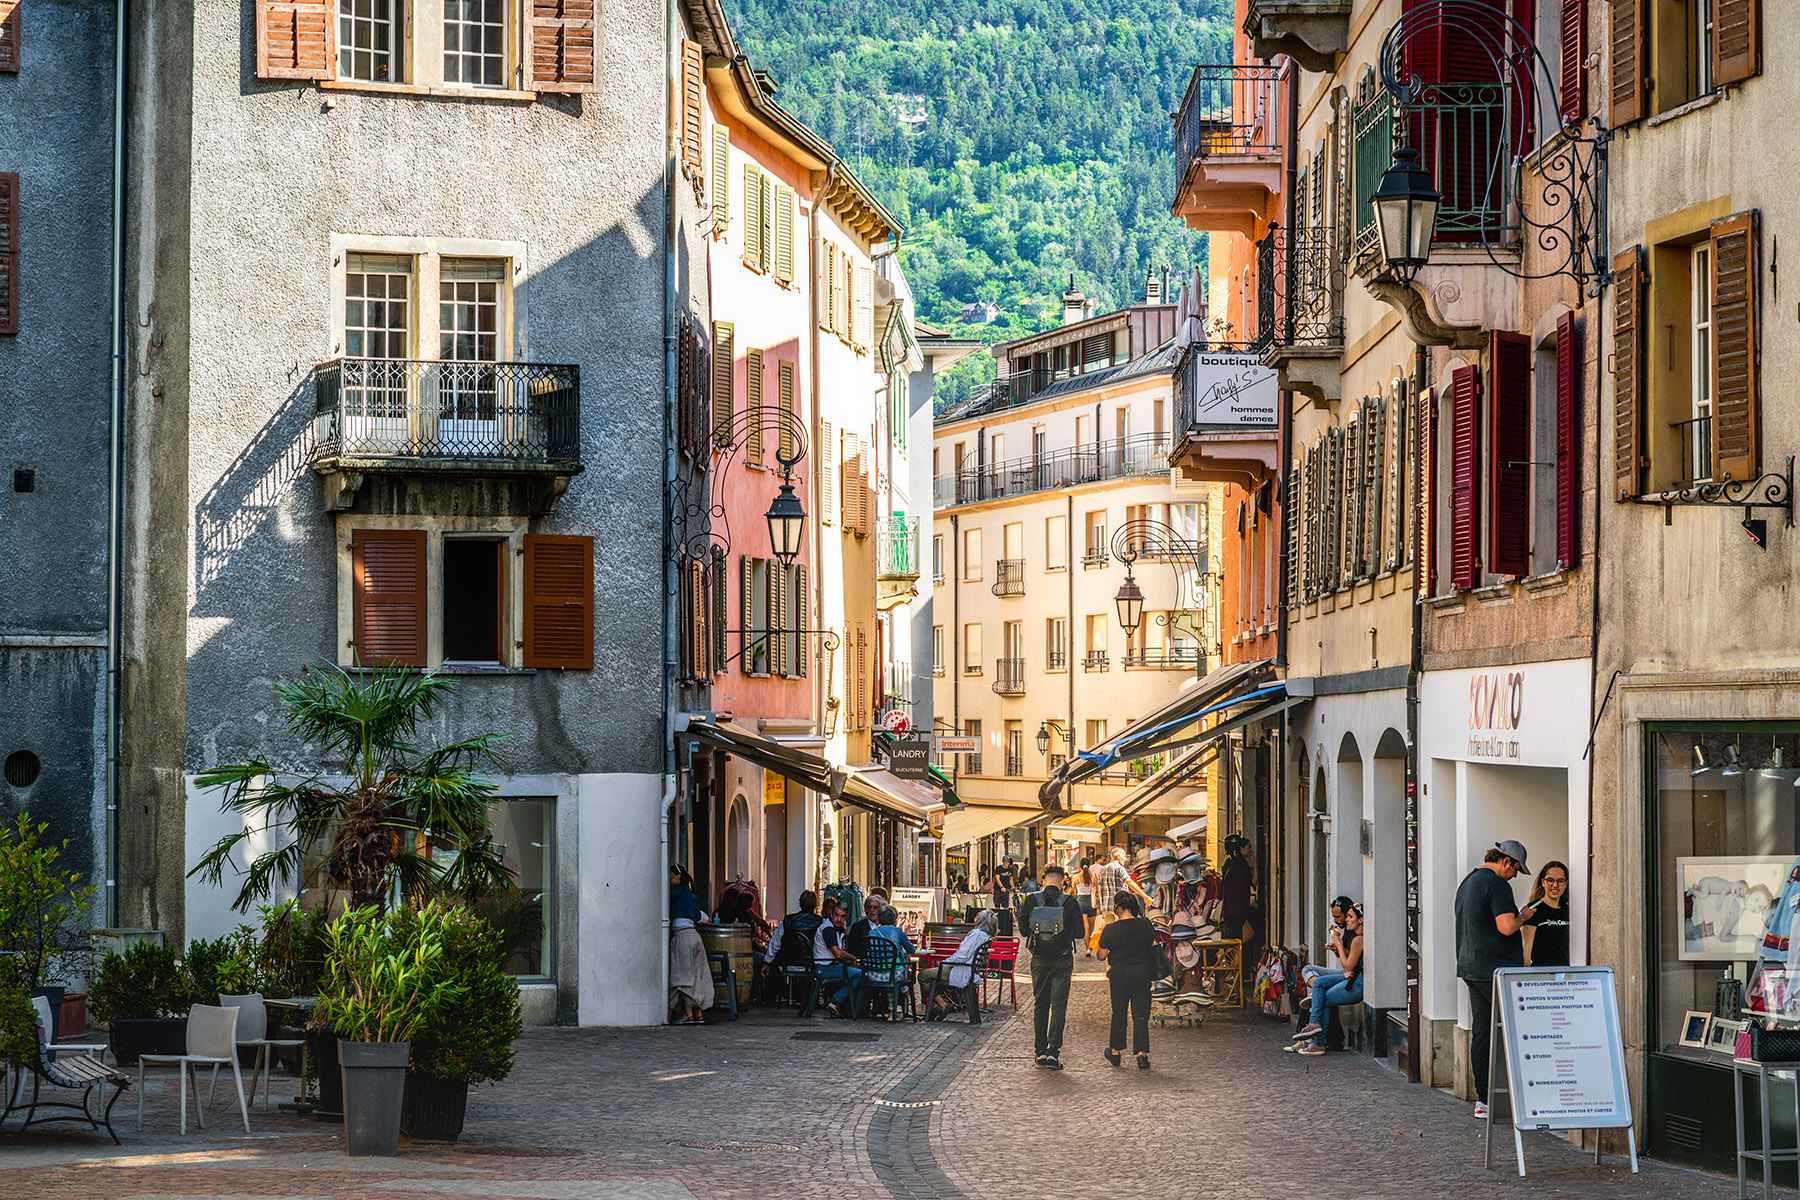 Sion, the capital of Valais